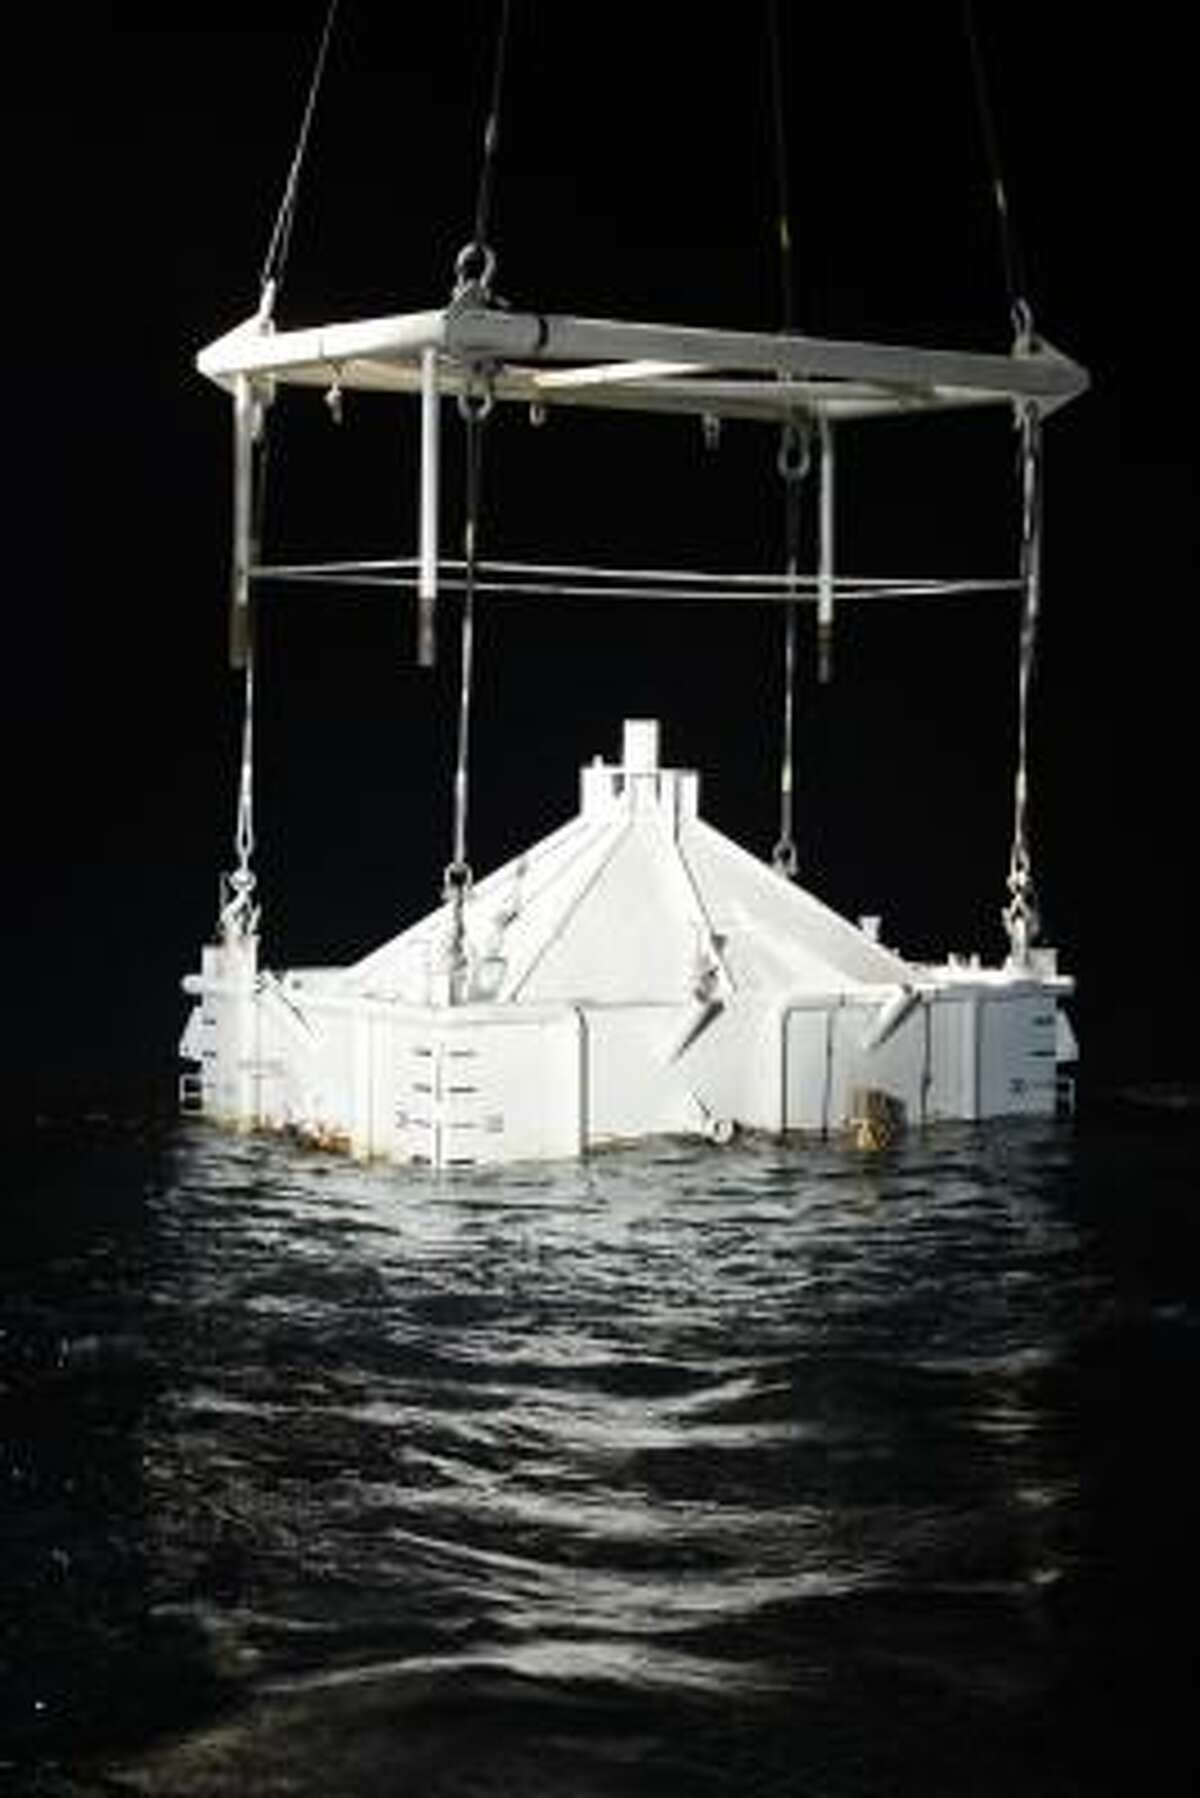 This is the containment vessel lowered into the Gulf of Mexico at the site of the Deepwater Horizon rig collapse.